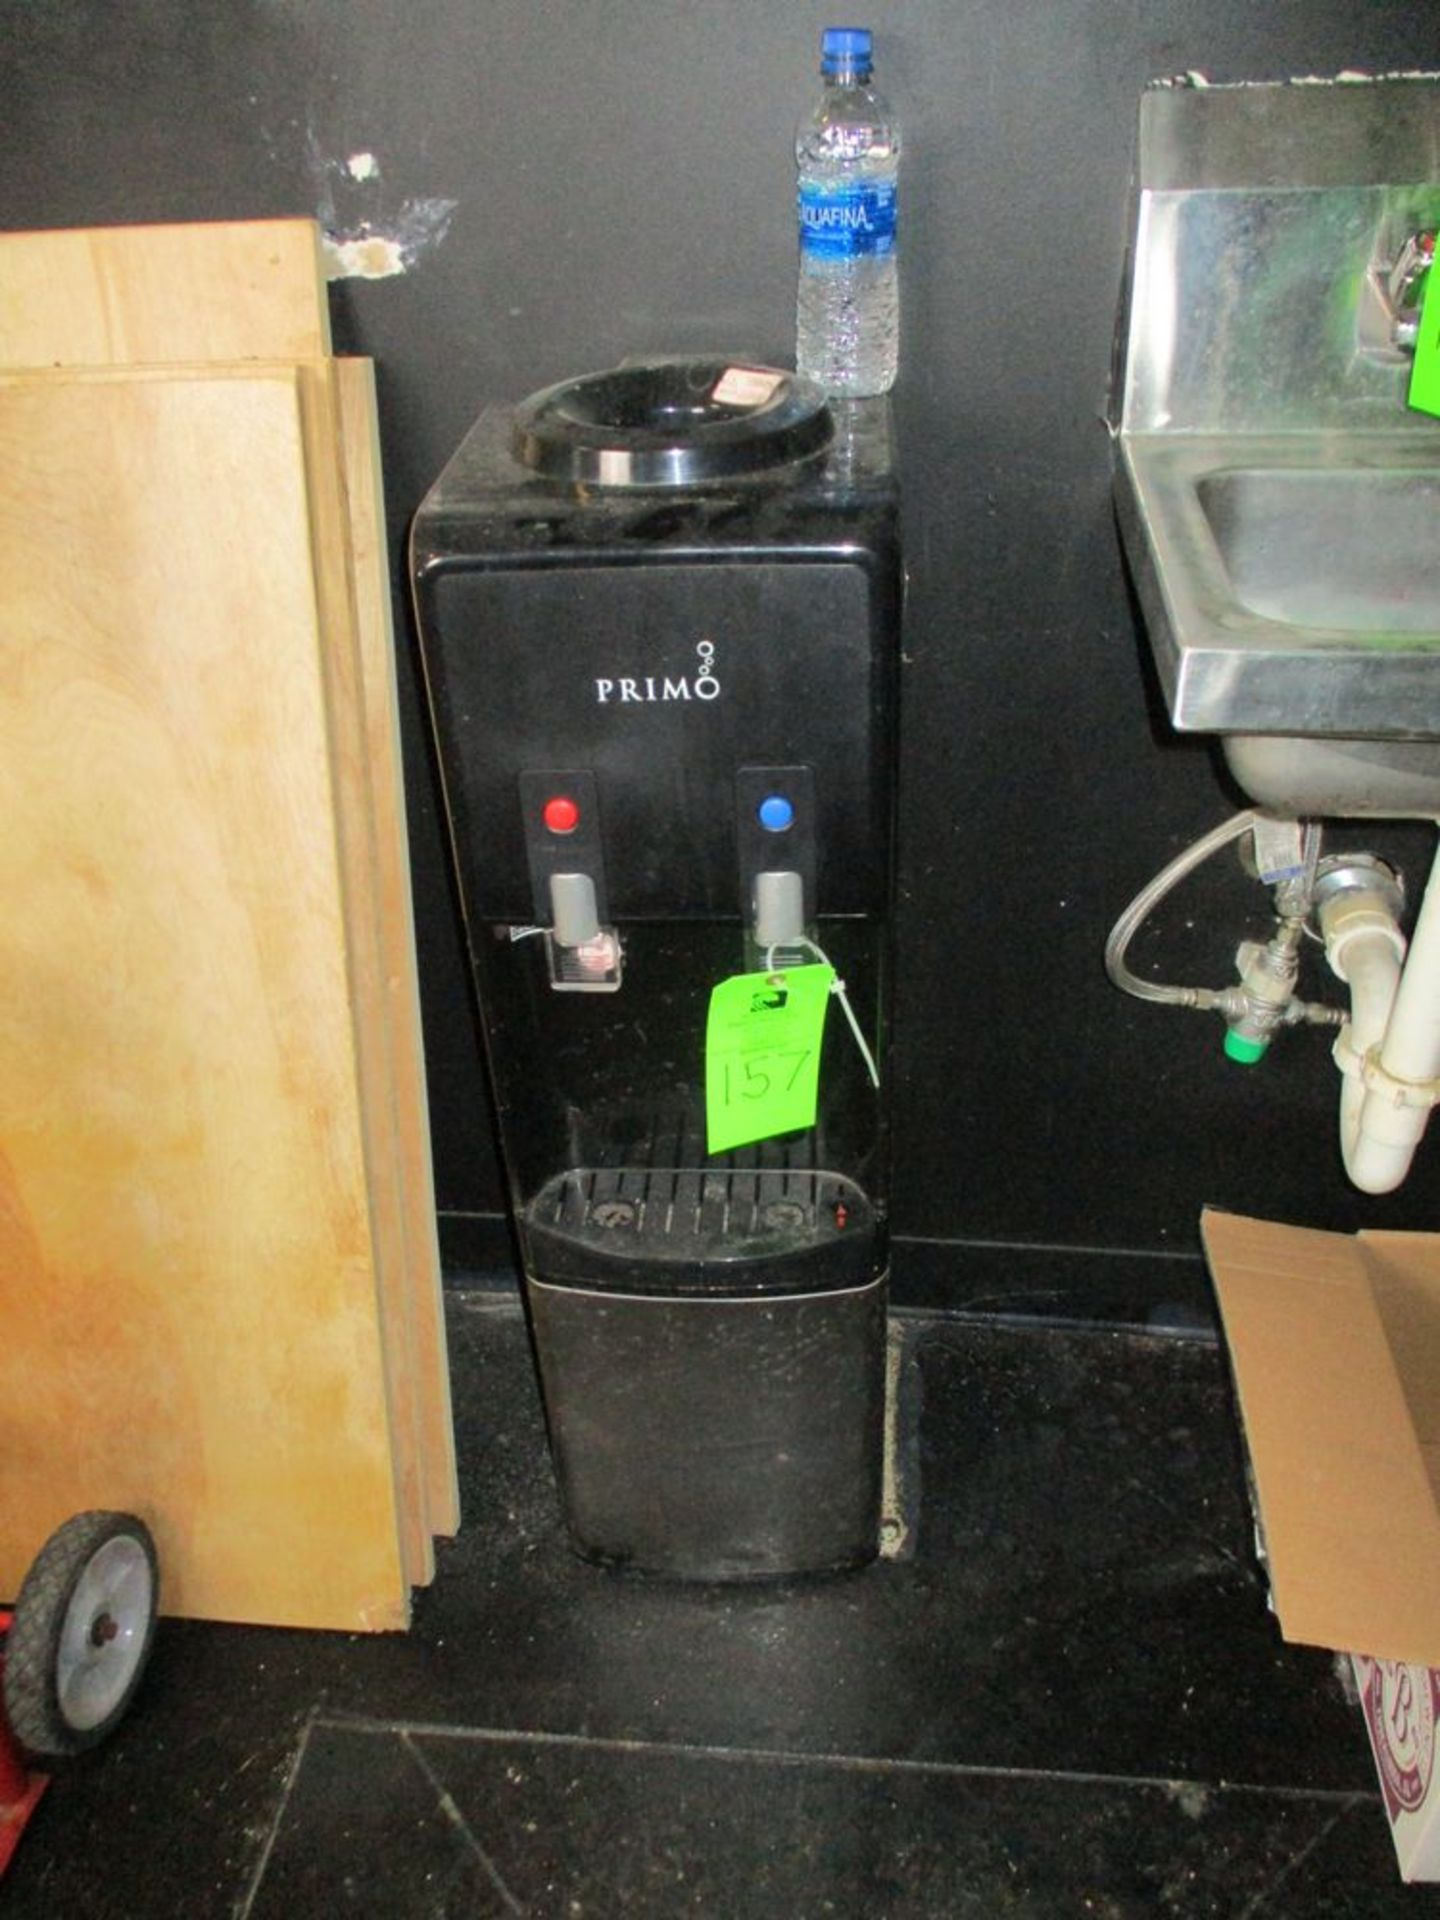 Primo chill water dispenser ***Auctioneer Note*** -- $20 Removal & Loading Fee will be applied to